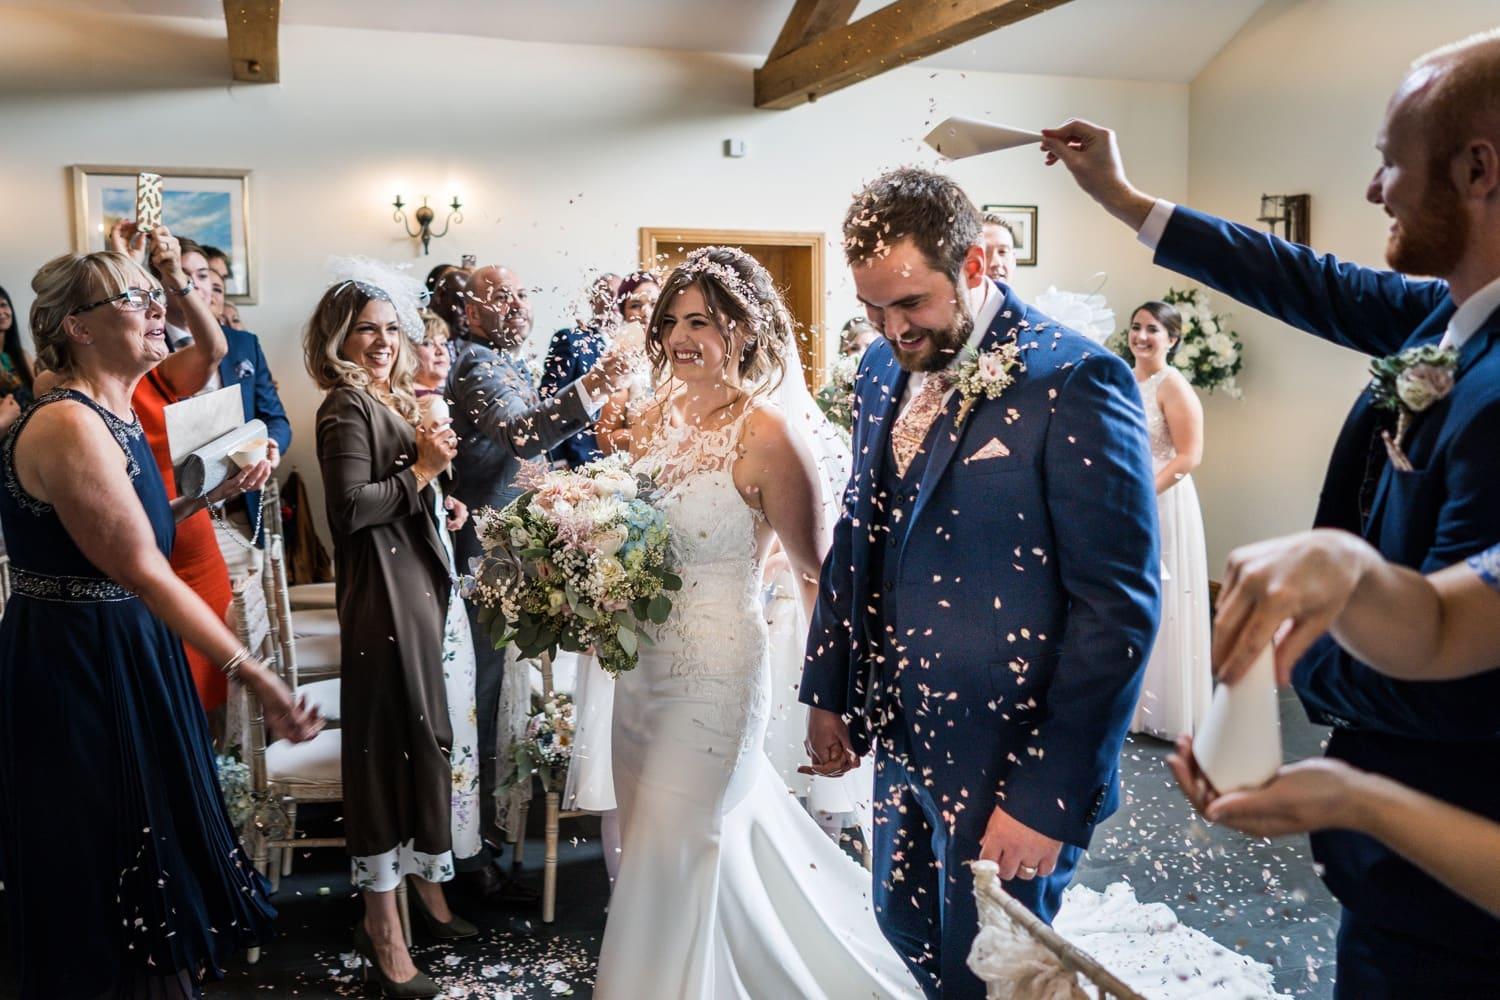 Bride and groom with confetti at South Wales wedding at Ocean View